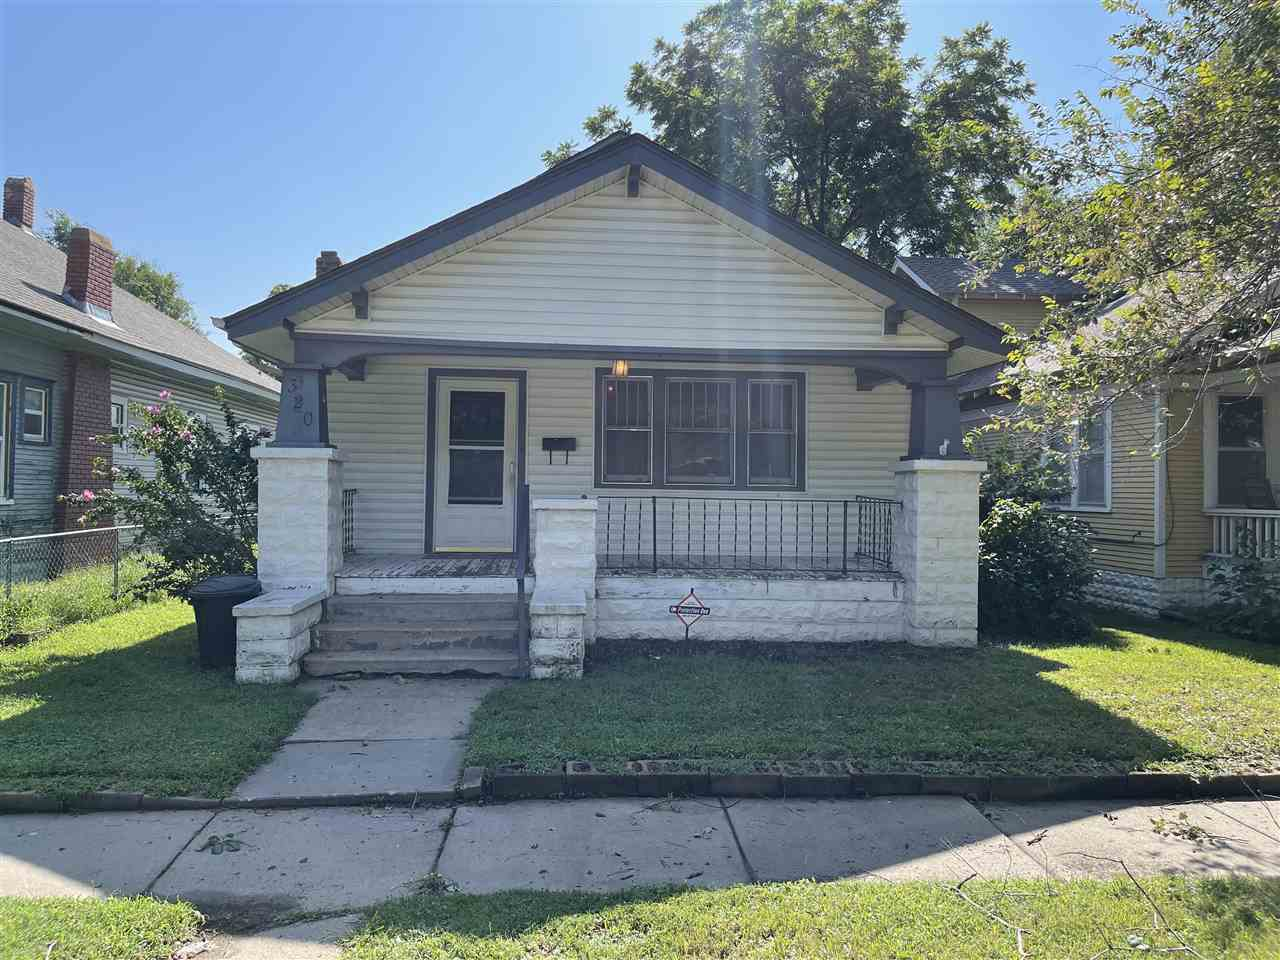 Bungalow located near the Delano district. 2 bedrooms with hardwood floors. Has living room and dini